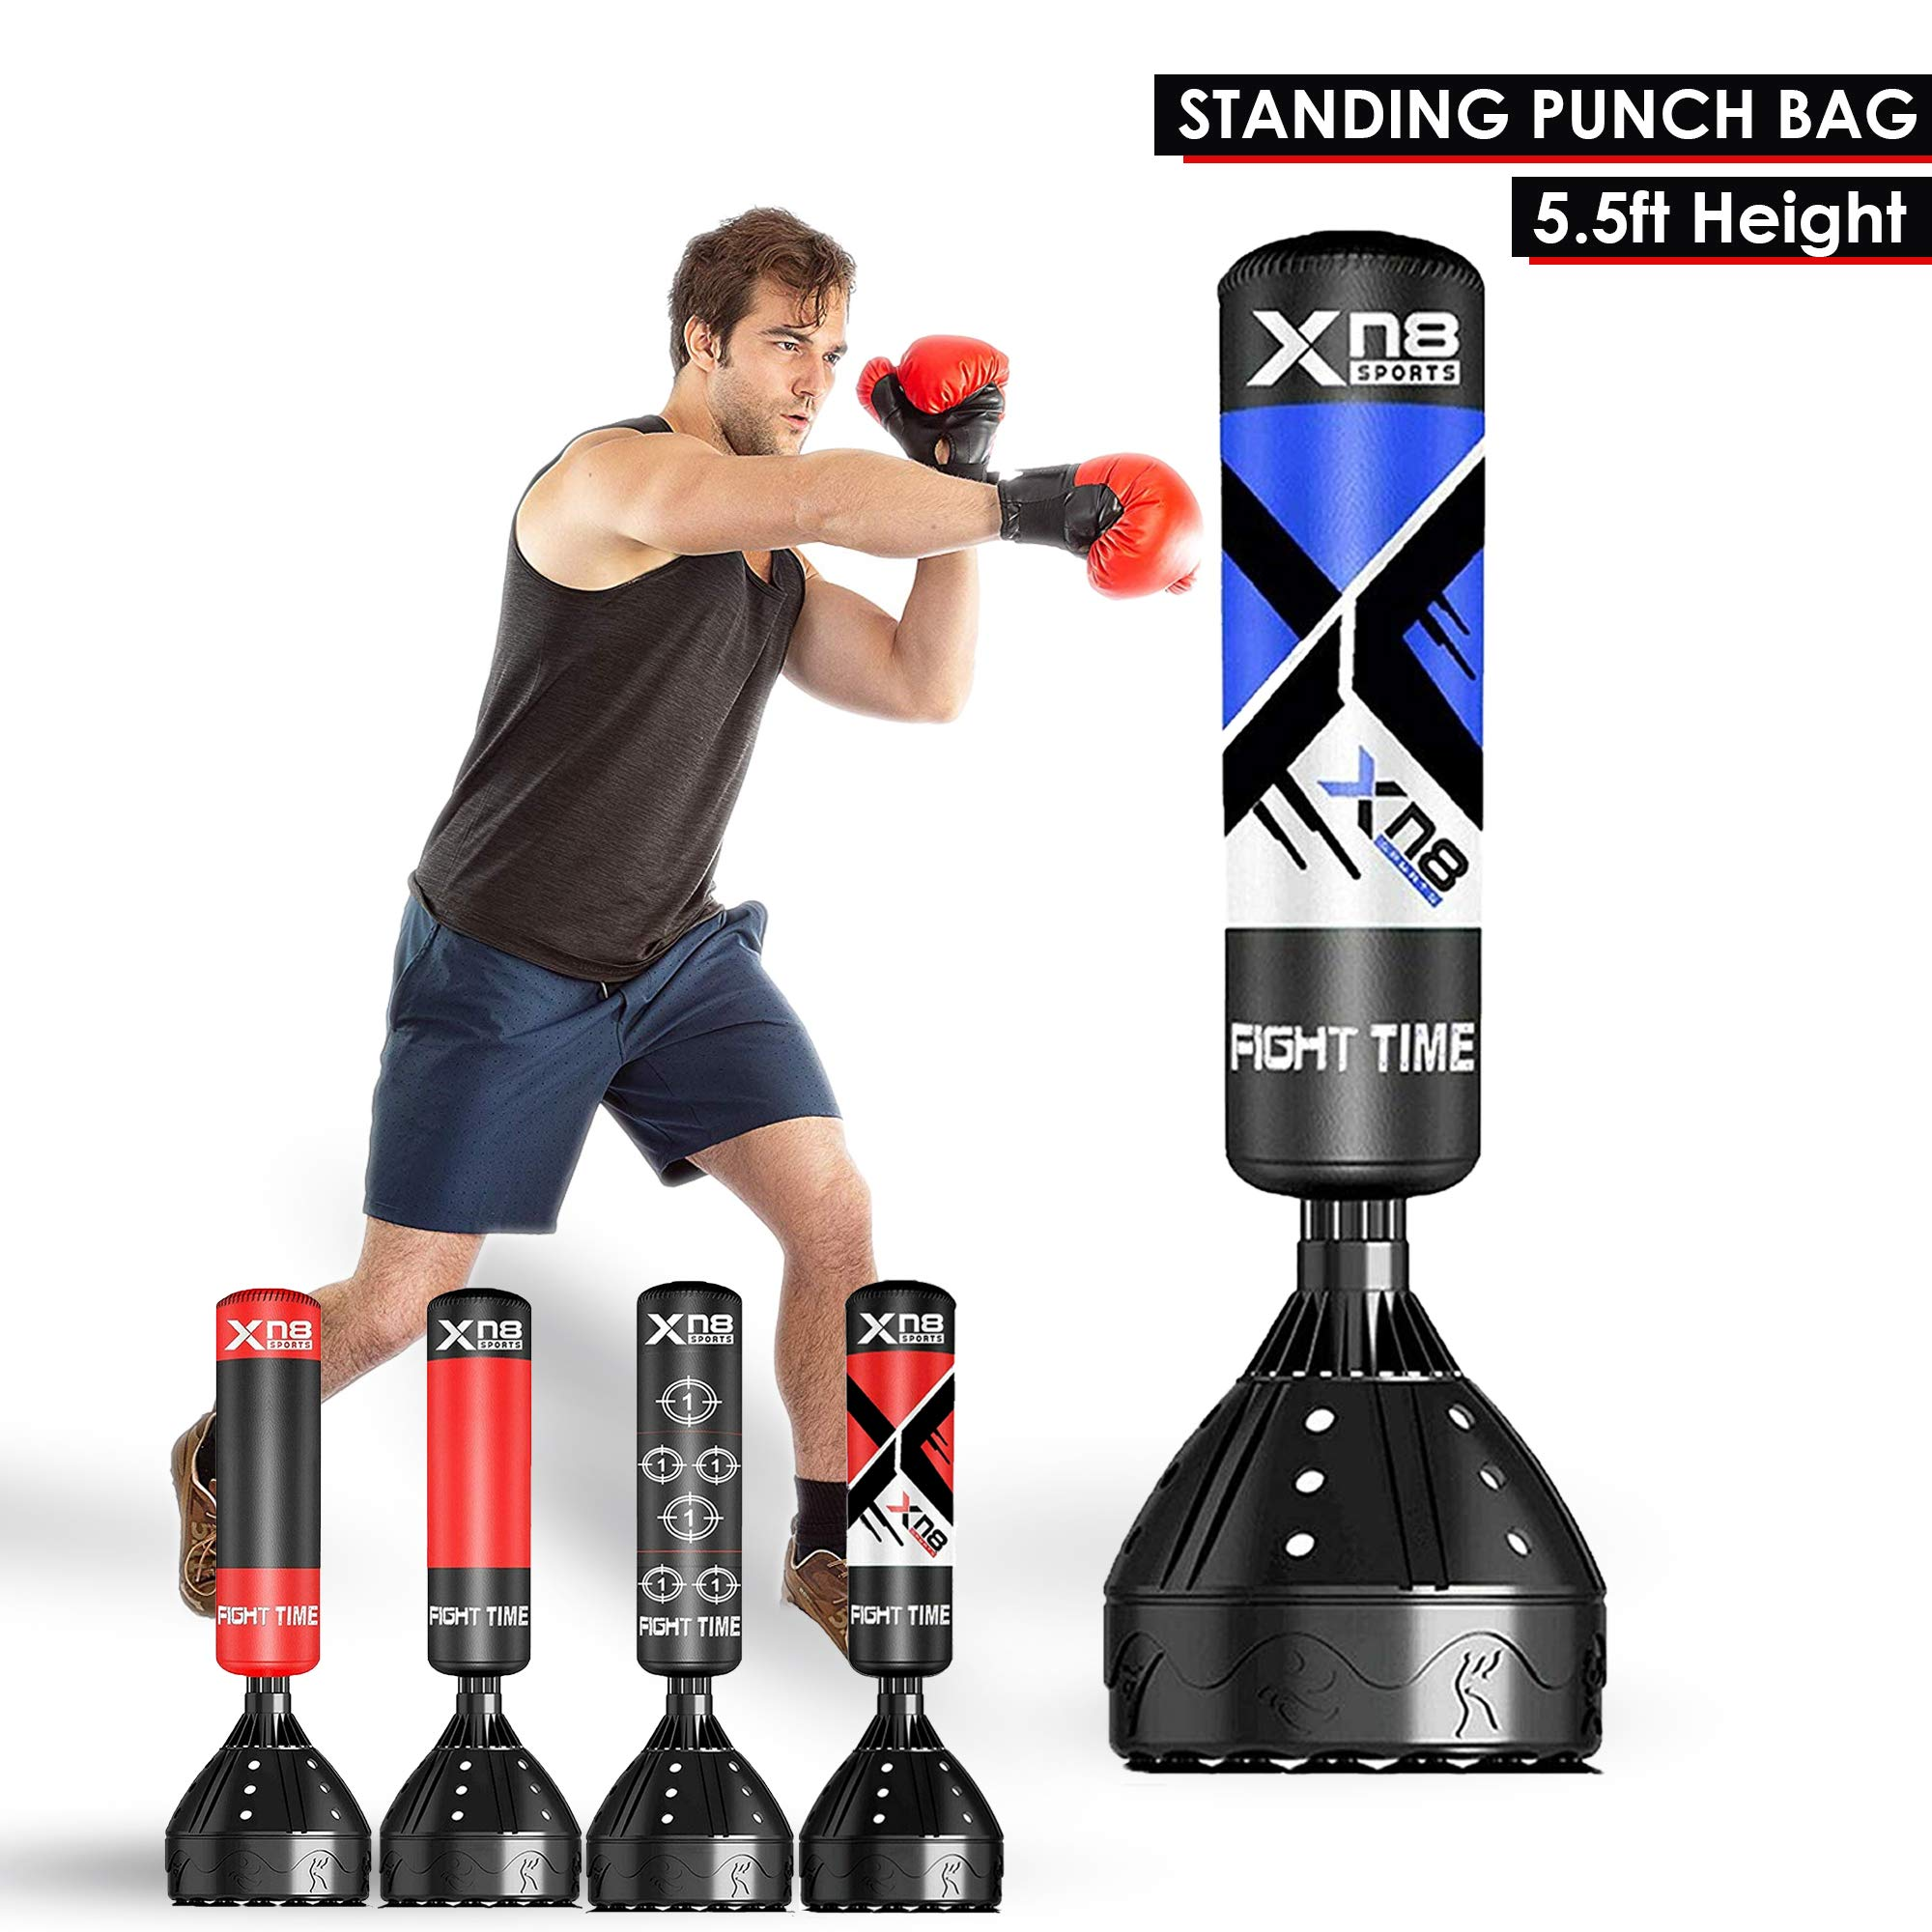 XN8 5.5ft Freestanding Punching Bag Stand Heavy Duty Kick Boxing Punch Bags Dummy Target Martial Arts MMA Training